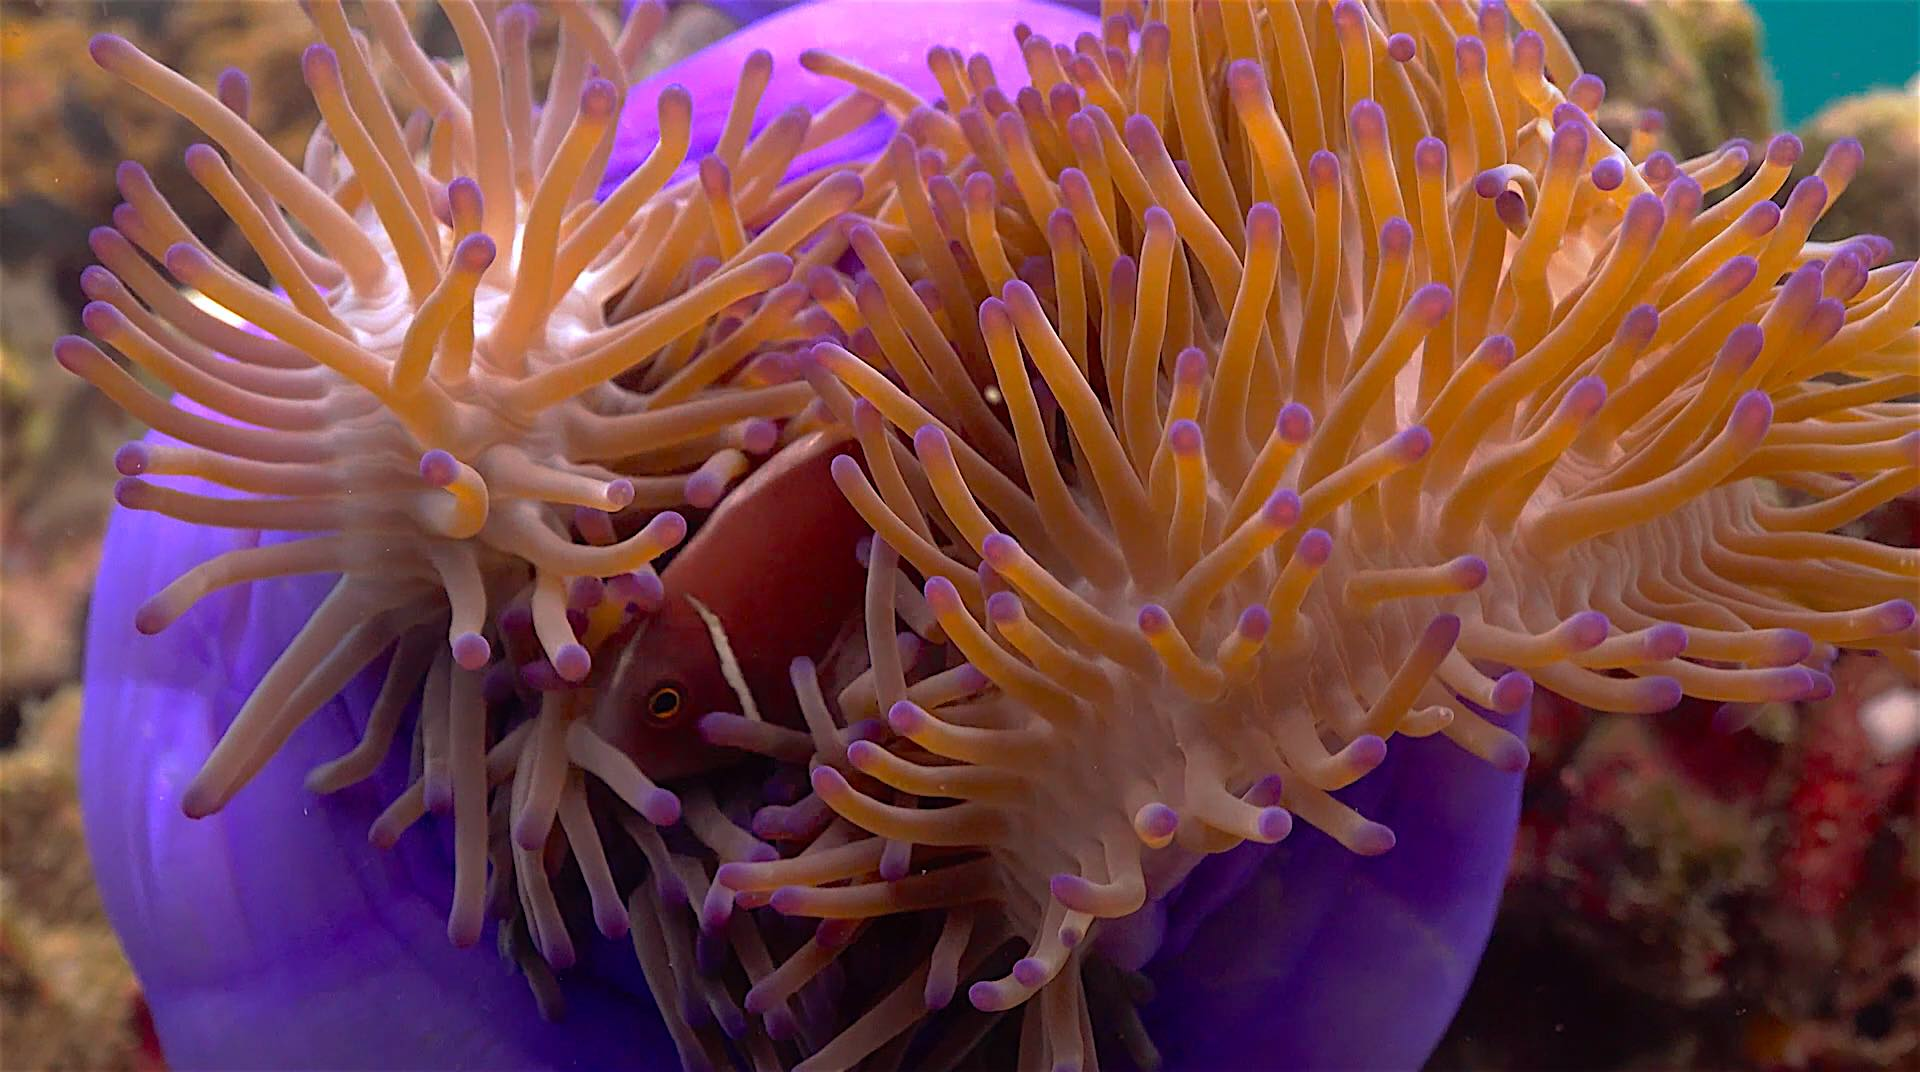 www.thefunkyturtle.com hin wong dive site koh tao anemone